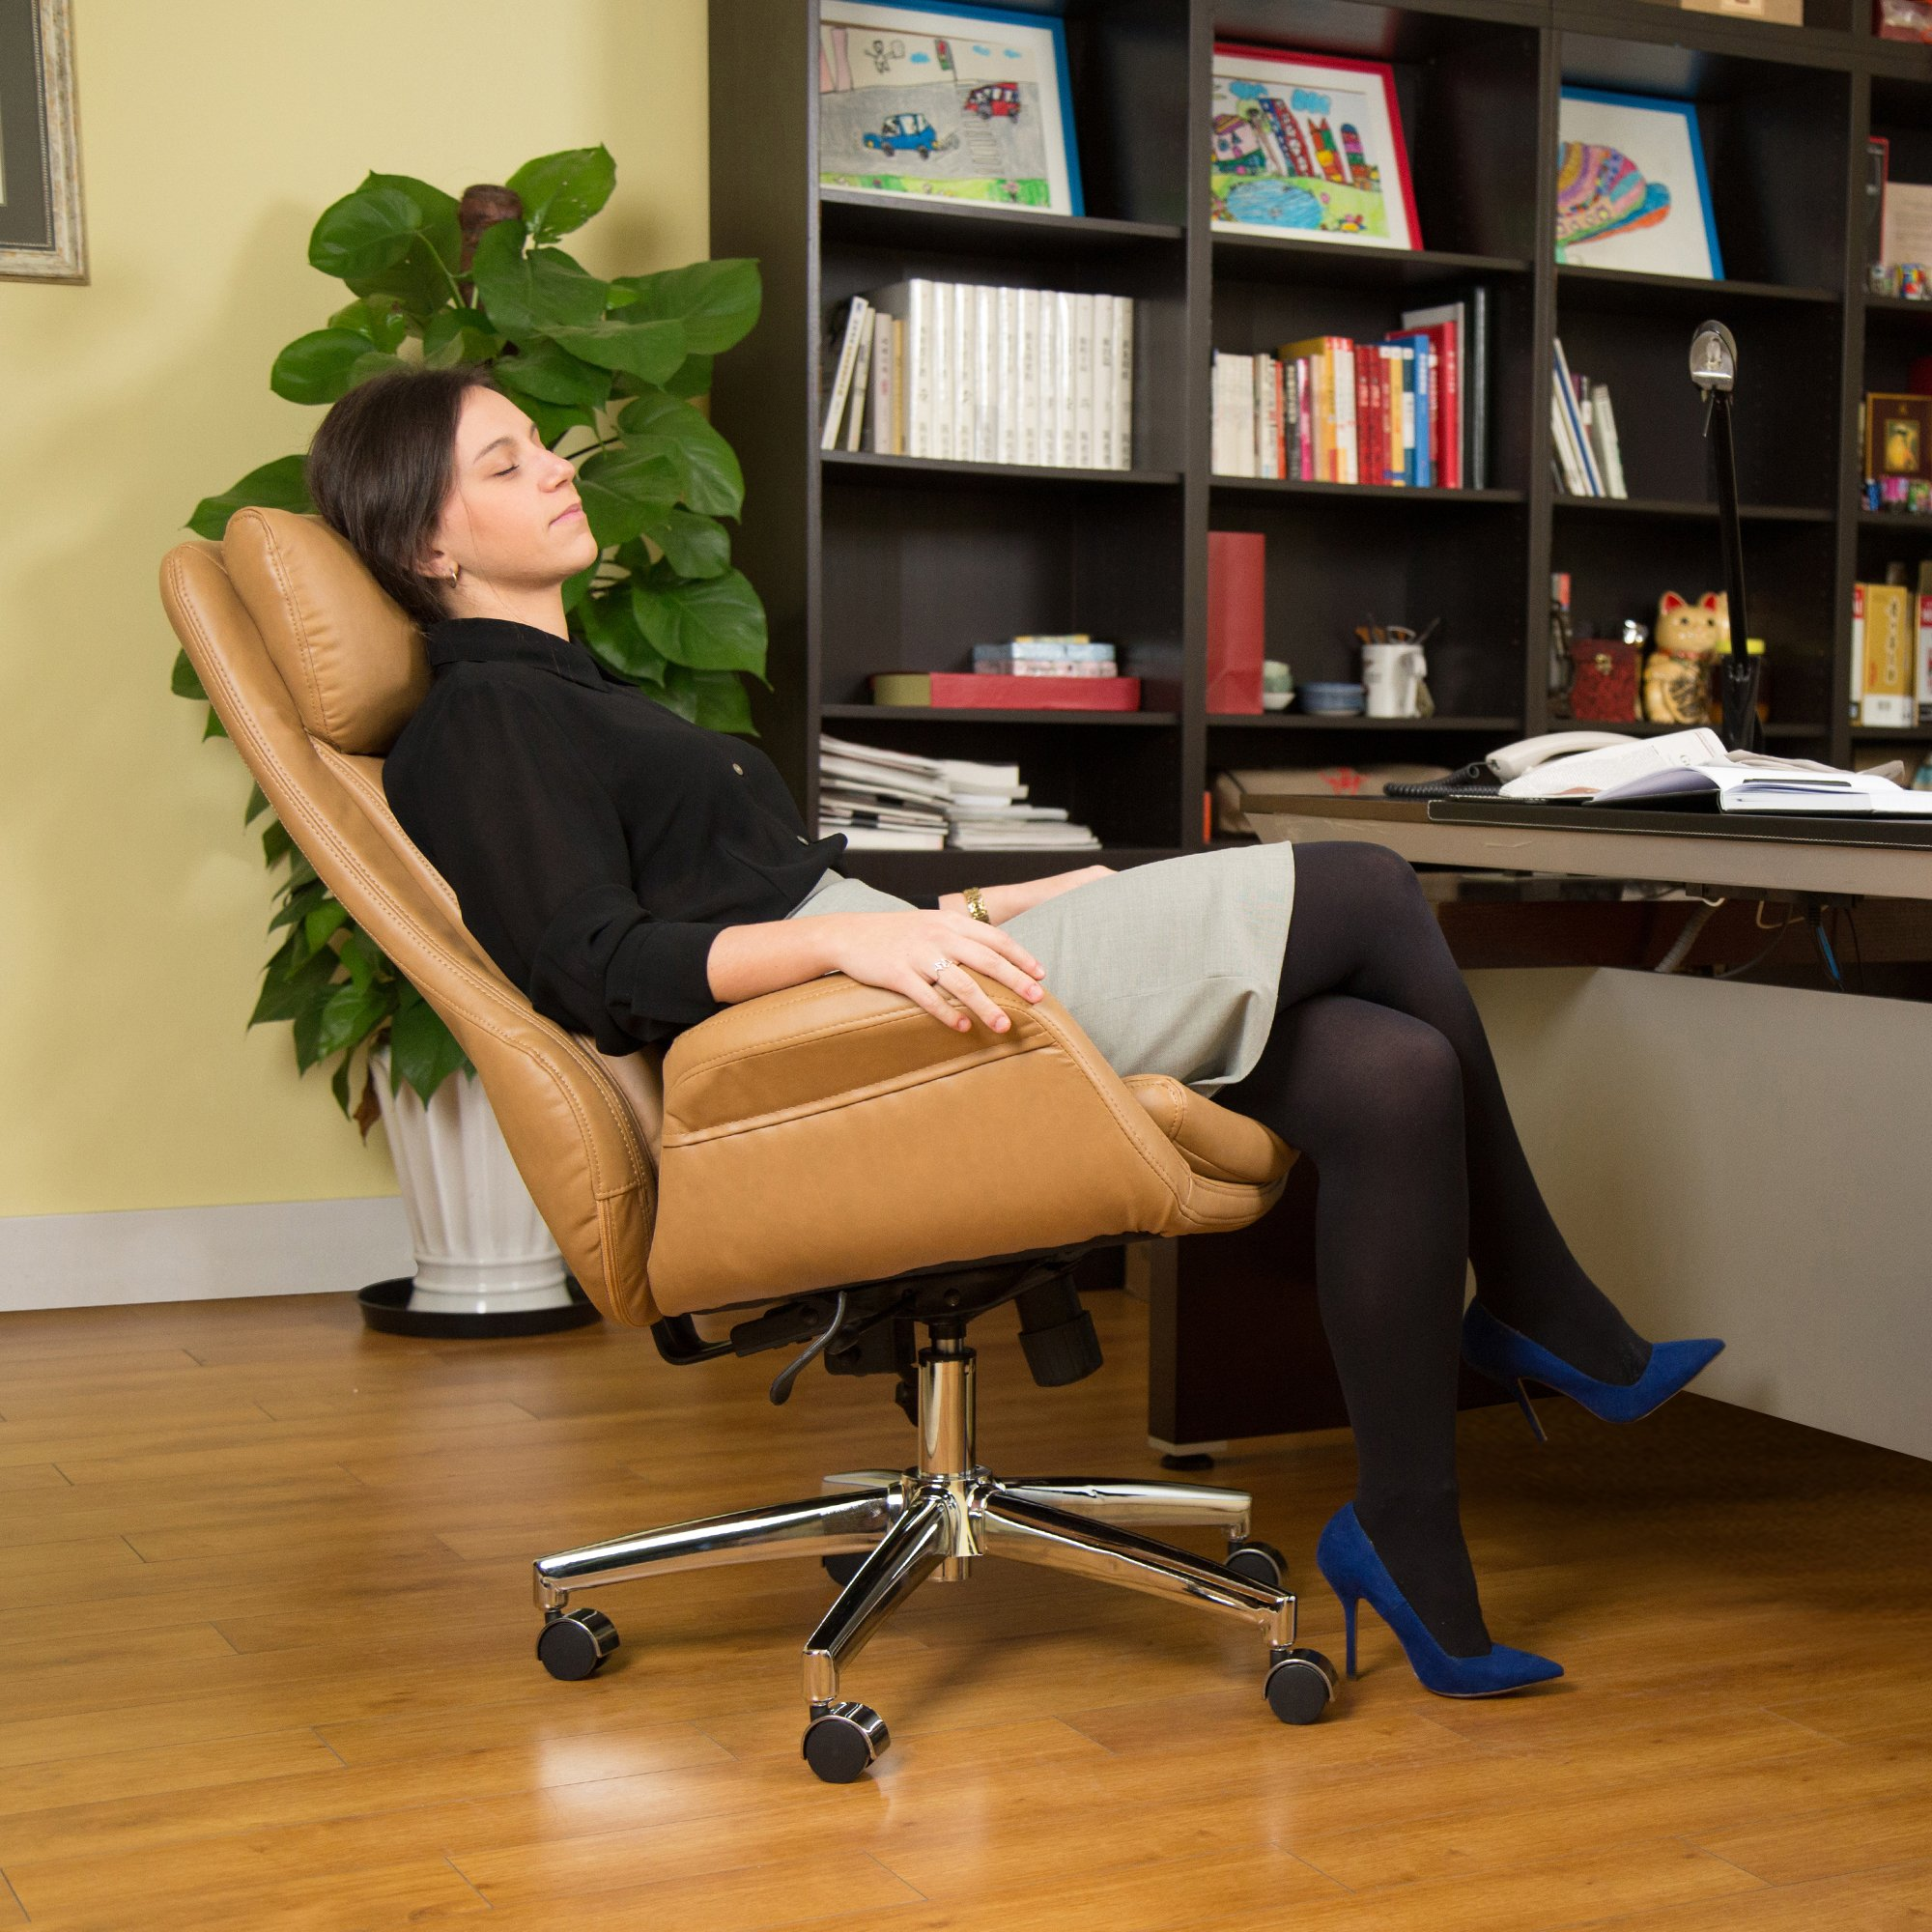 Glitzhome Adjustable High-Back Office Chair Executive Swivel Chair PU Leather, Camel by Glitzhome